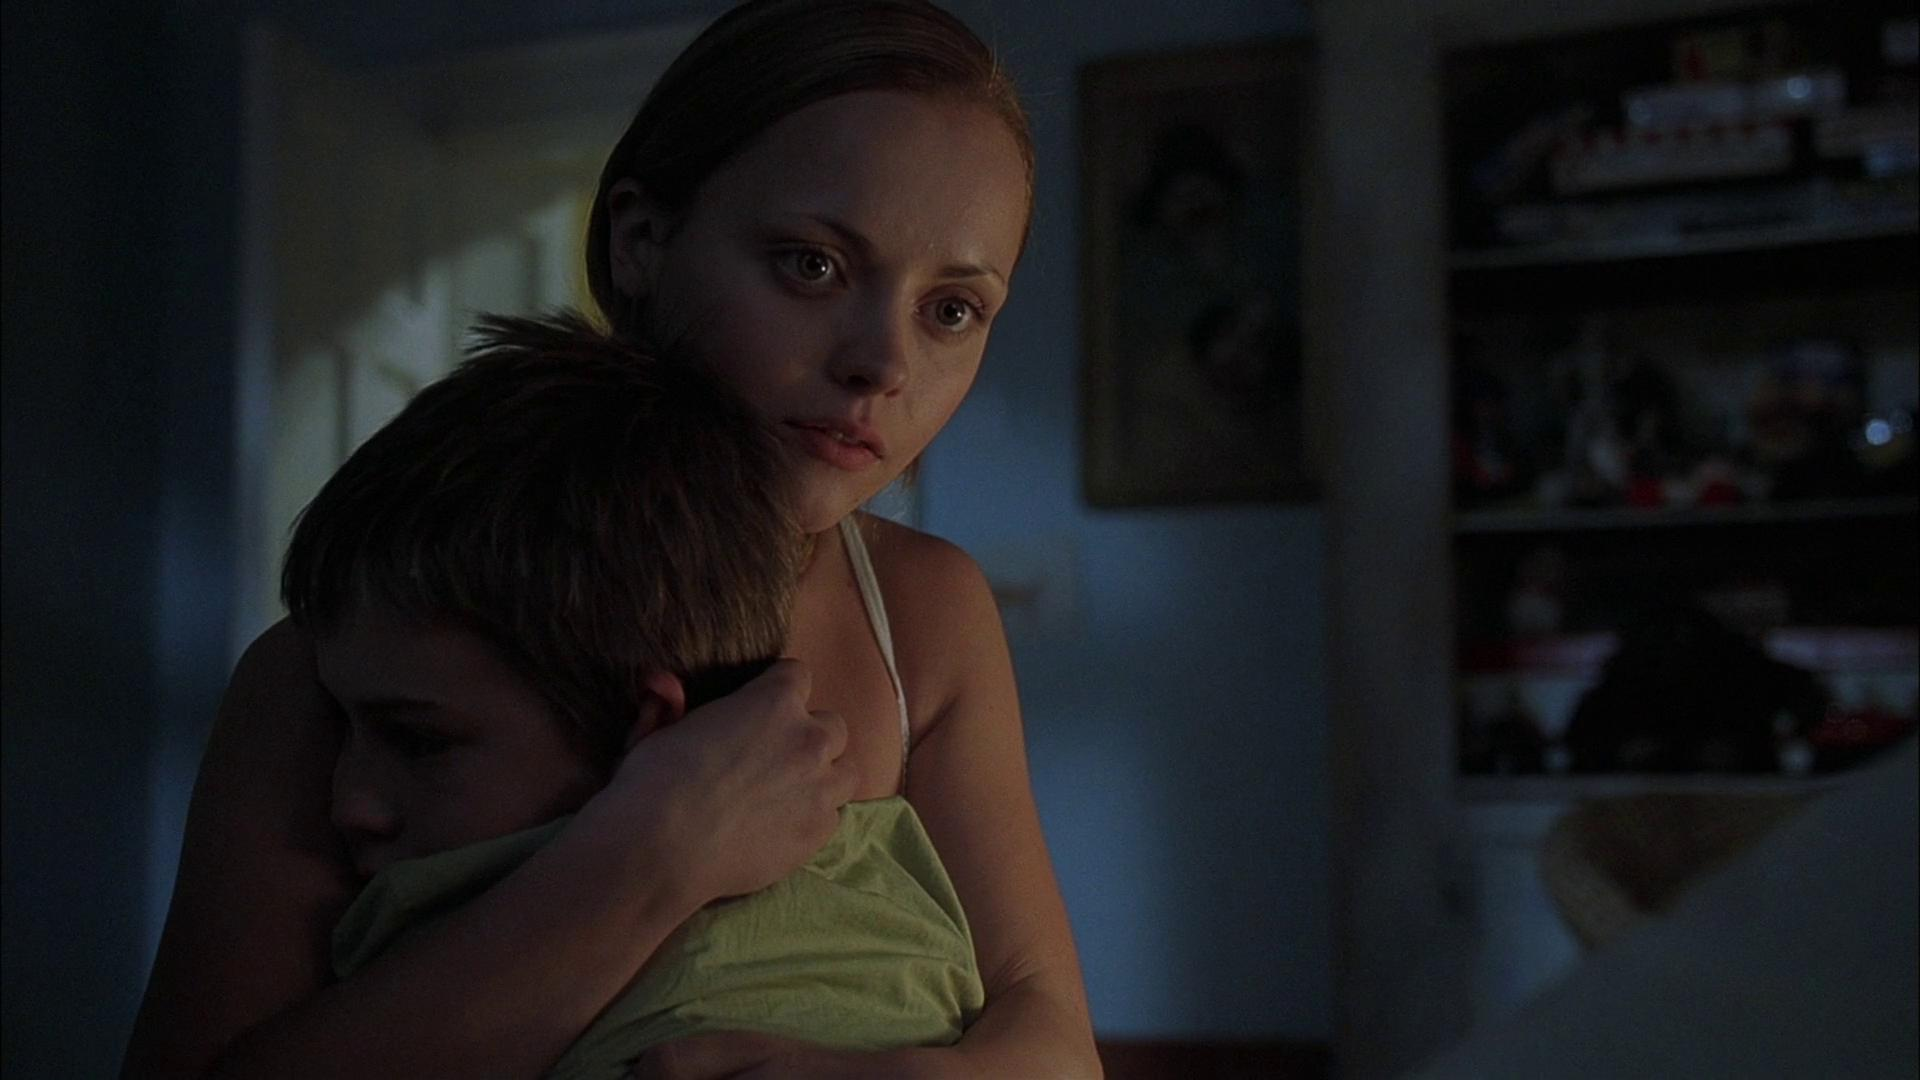 Christina Ricci and Harry Forrester in The Gathering (2002)